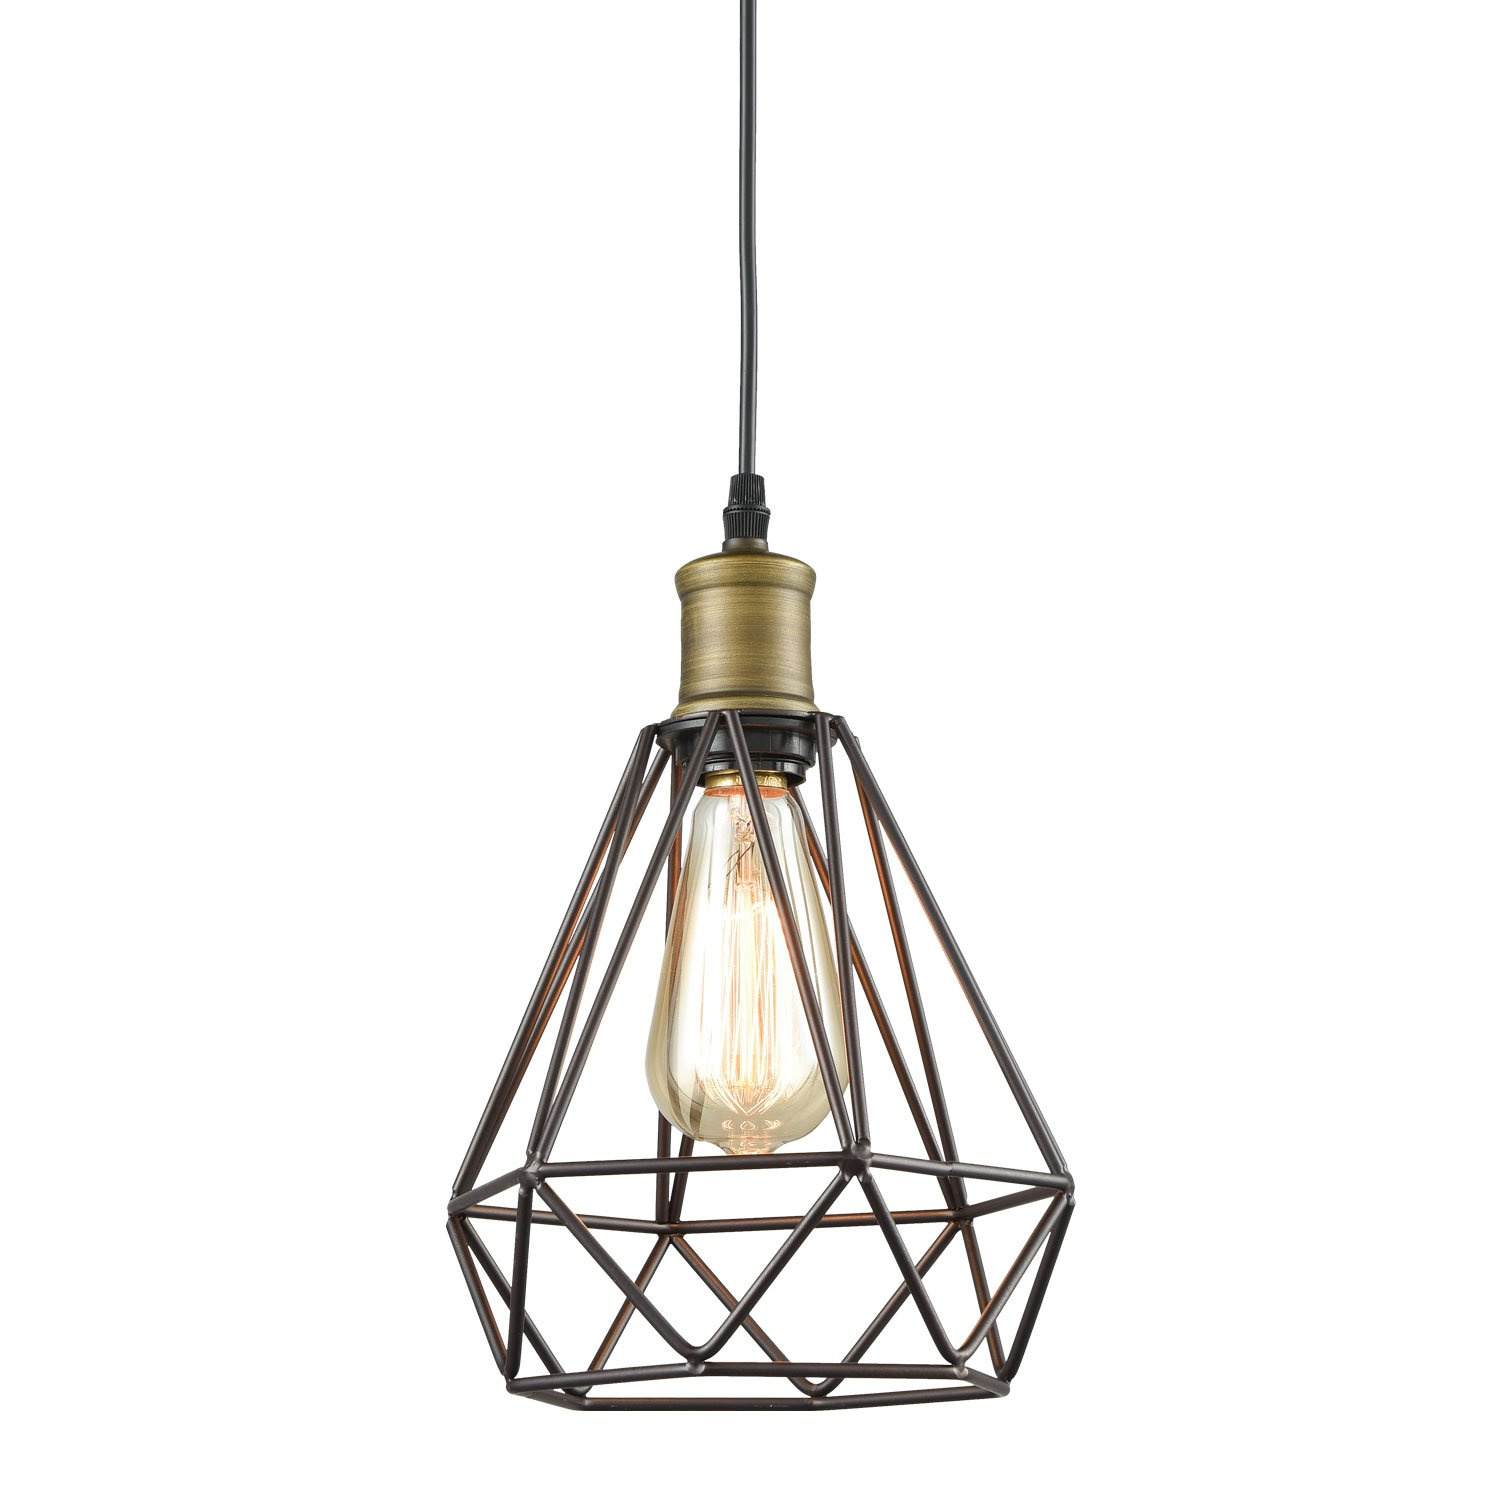 dana products souda luis arrivillaga light lighting pendant